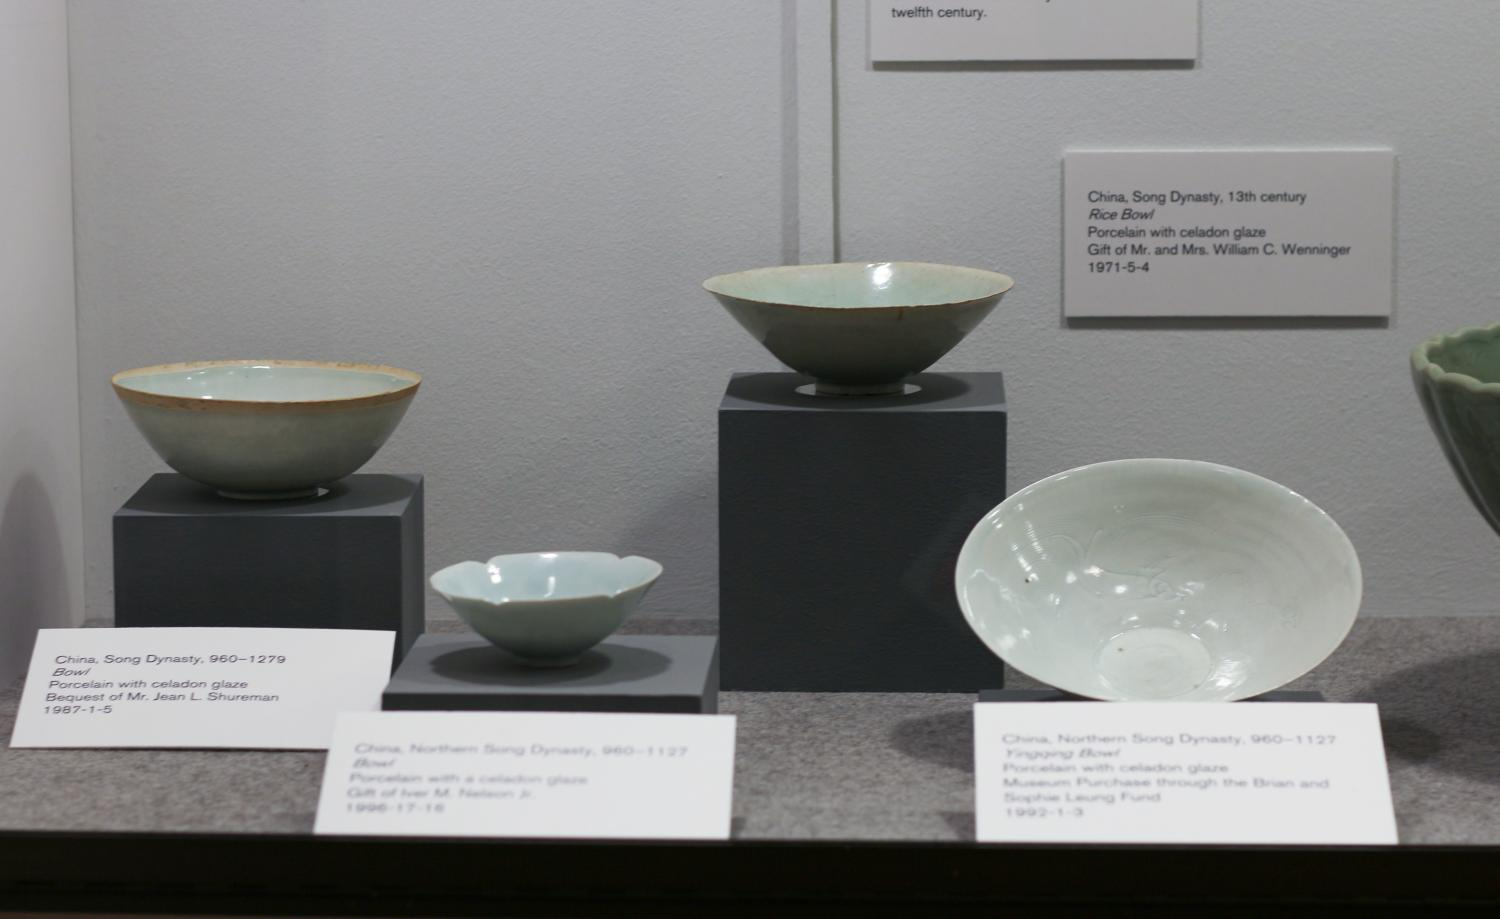 Case of chinese porcelain with pale green glazes. These small, delicate pieces date from as early as the Song dynasty.